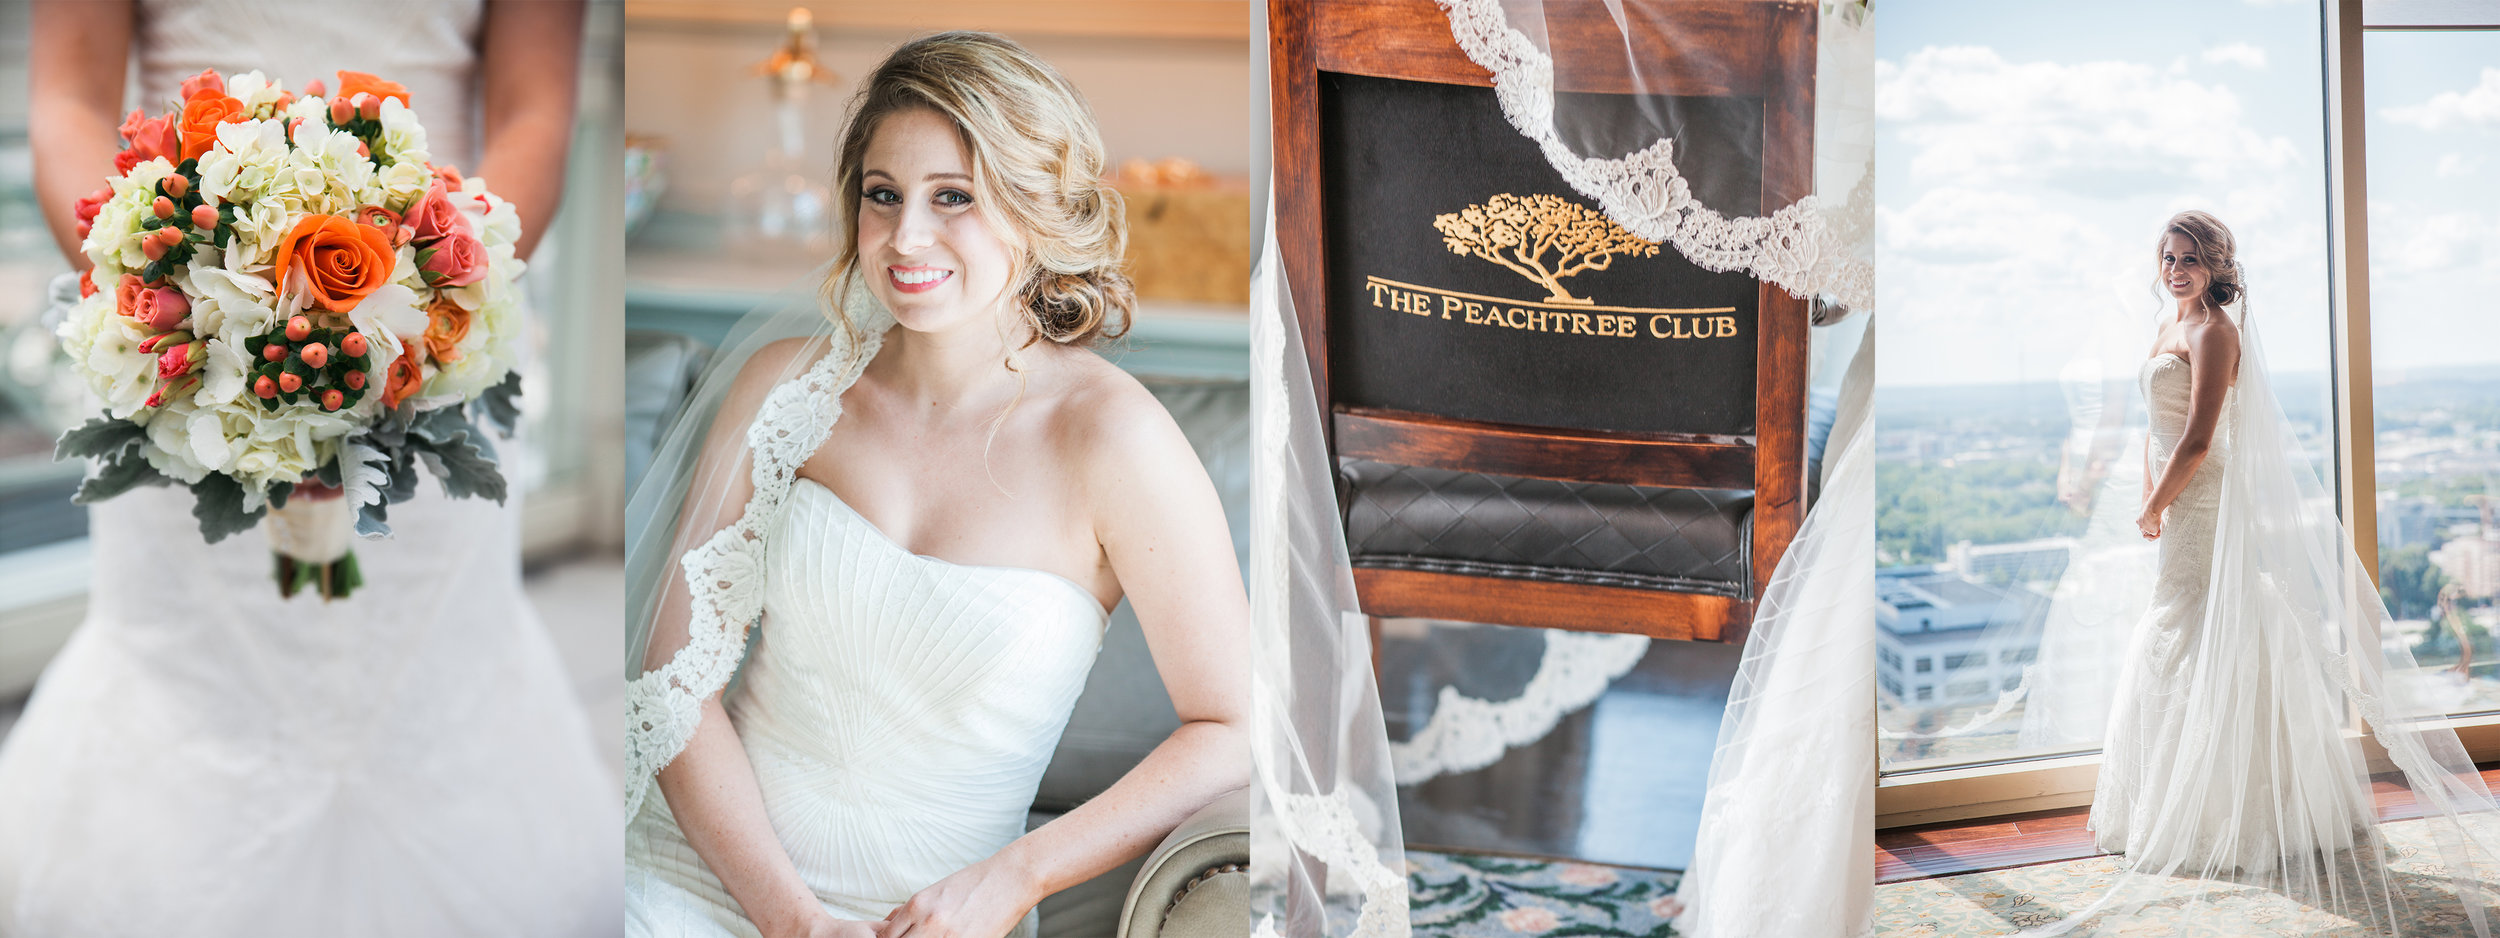 atlanta peachtree club bridal session flower  lace wedding portraits